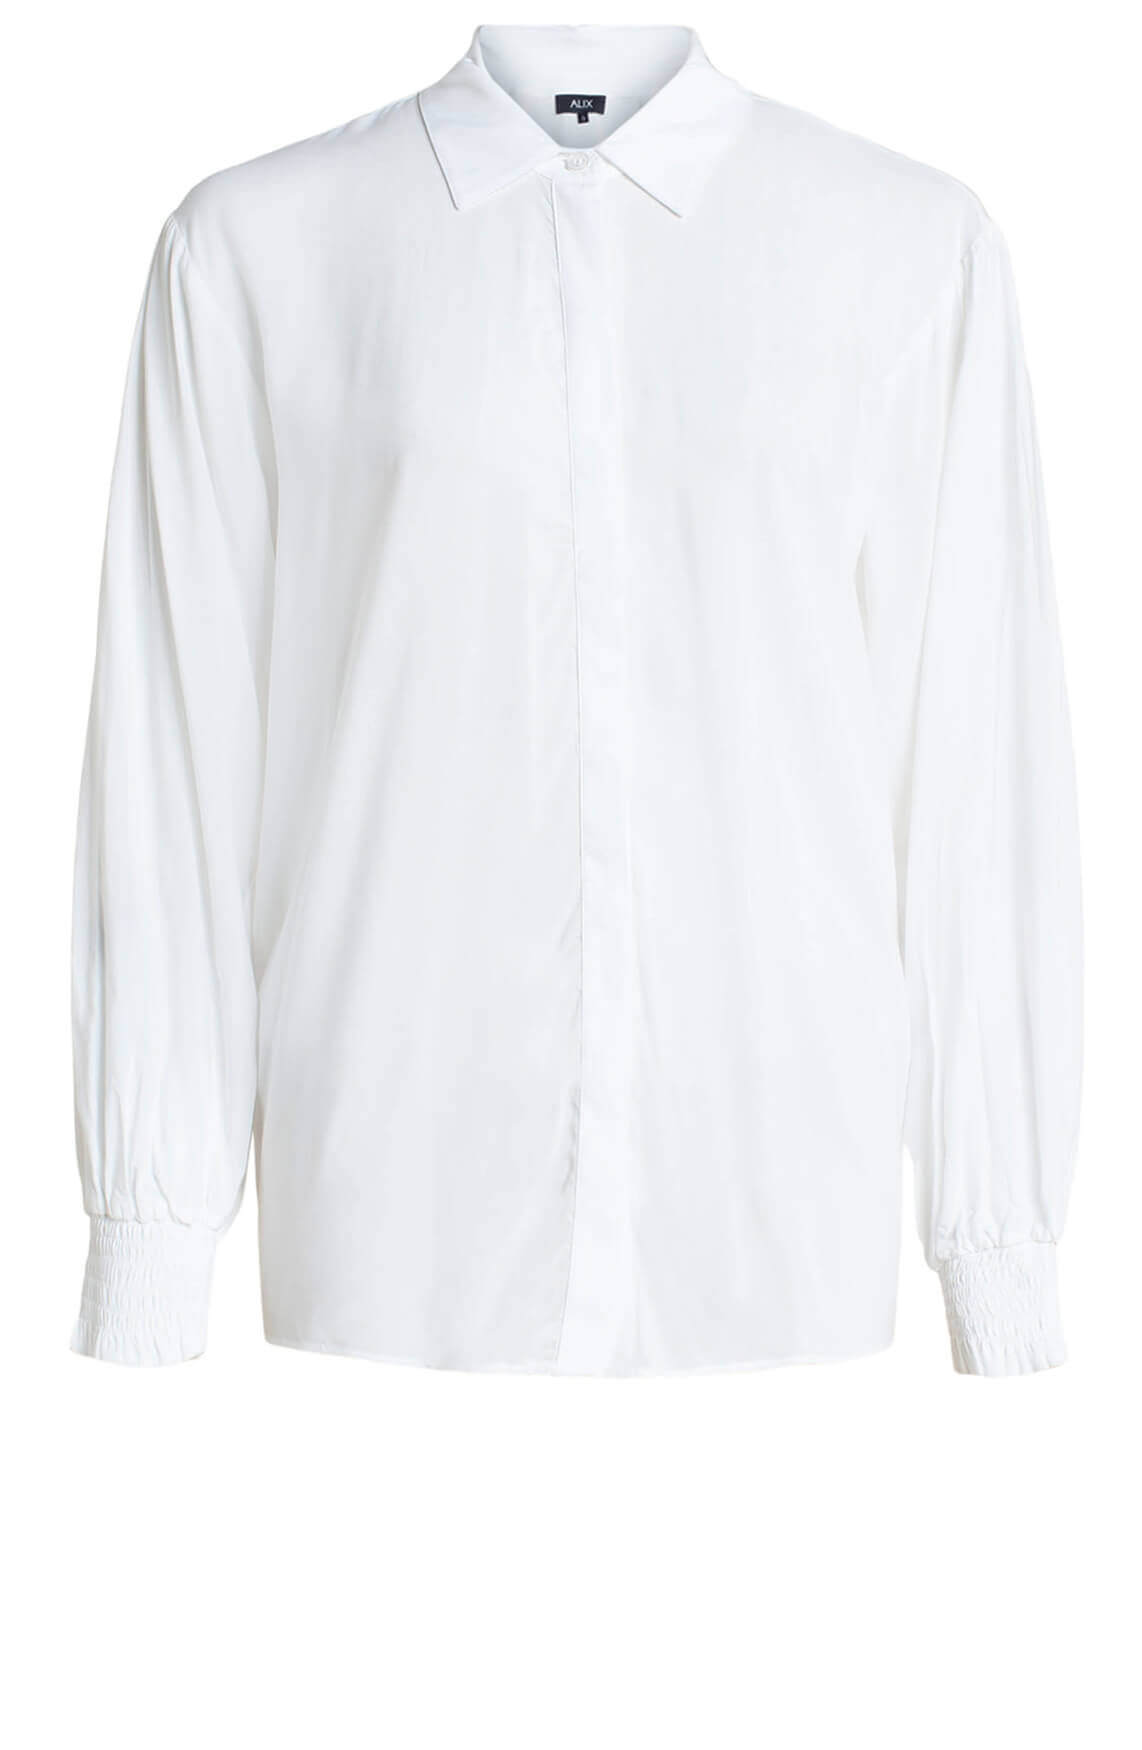 Alix The Label Dames Embroidery blouse wit